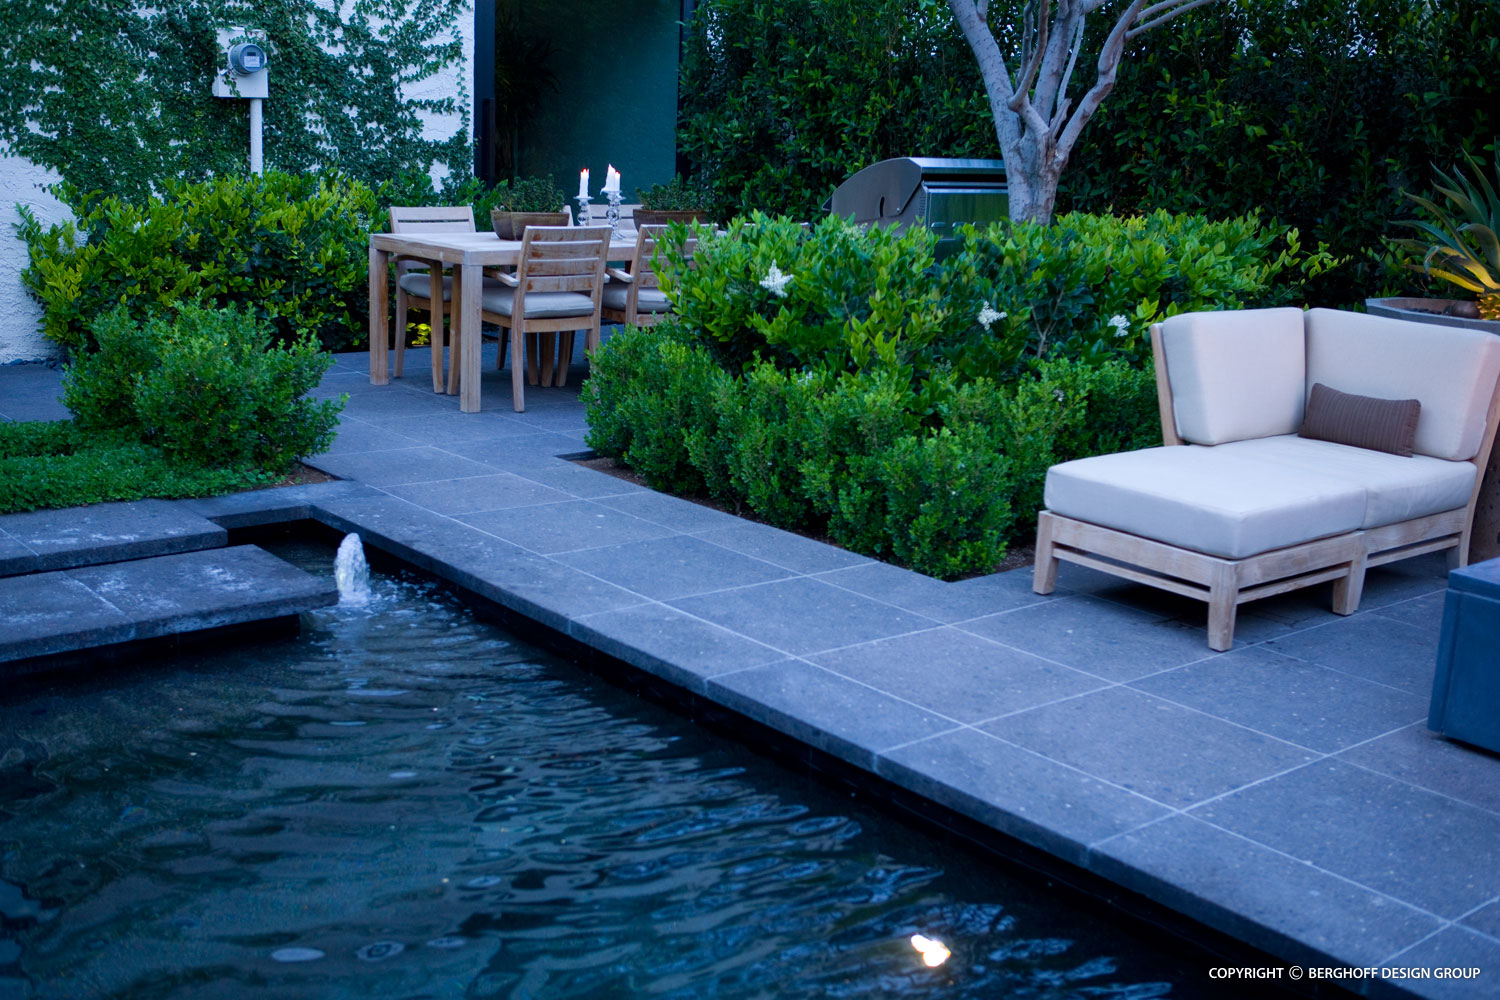 mcm-modern-contemporary-home-landscape-architecture-phoenix-G4-img07